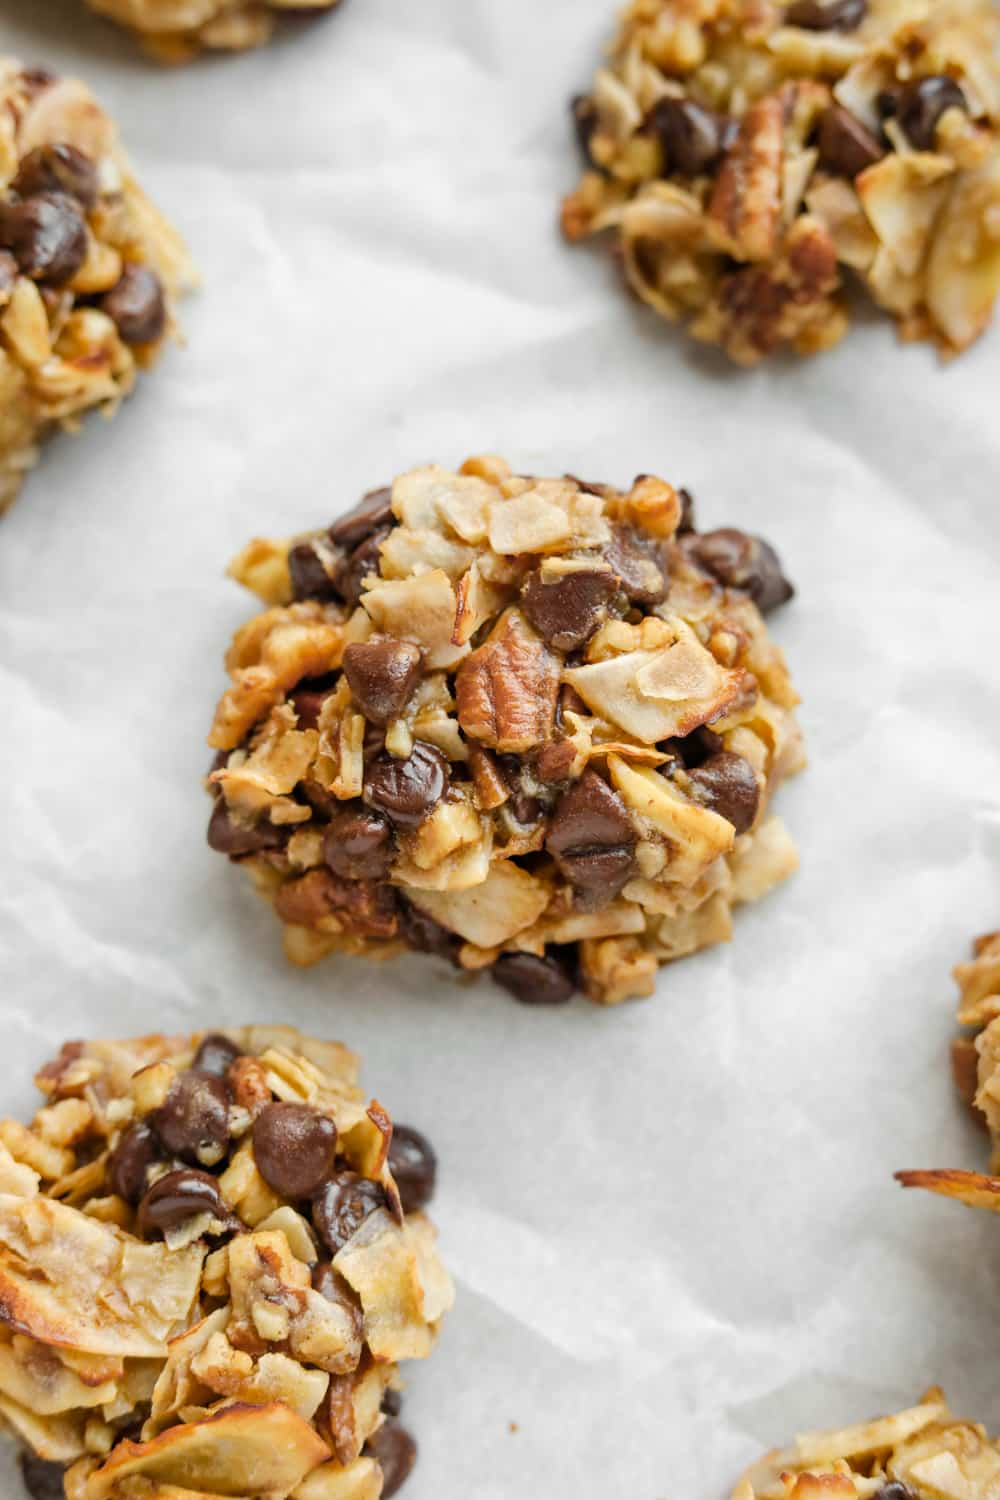 A cookie made with coconut flakes, pecans, and chocolate chips on parchment paper.